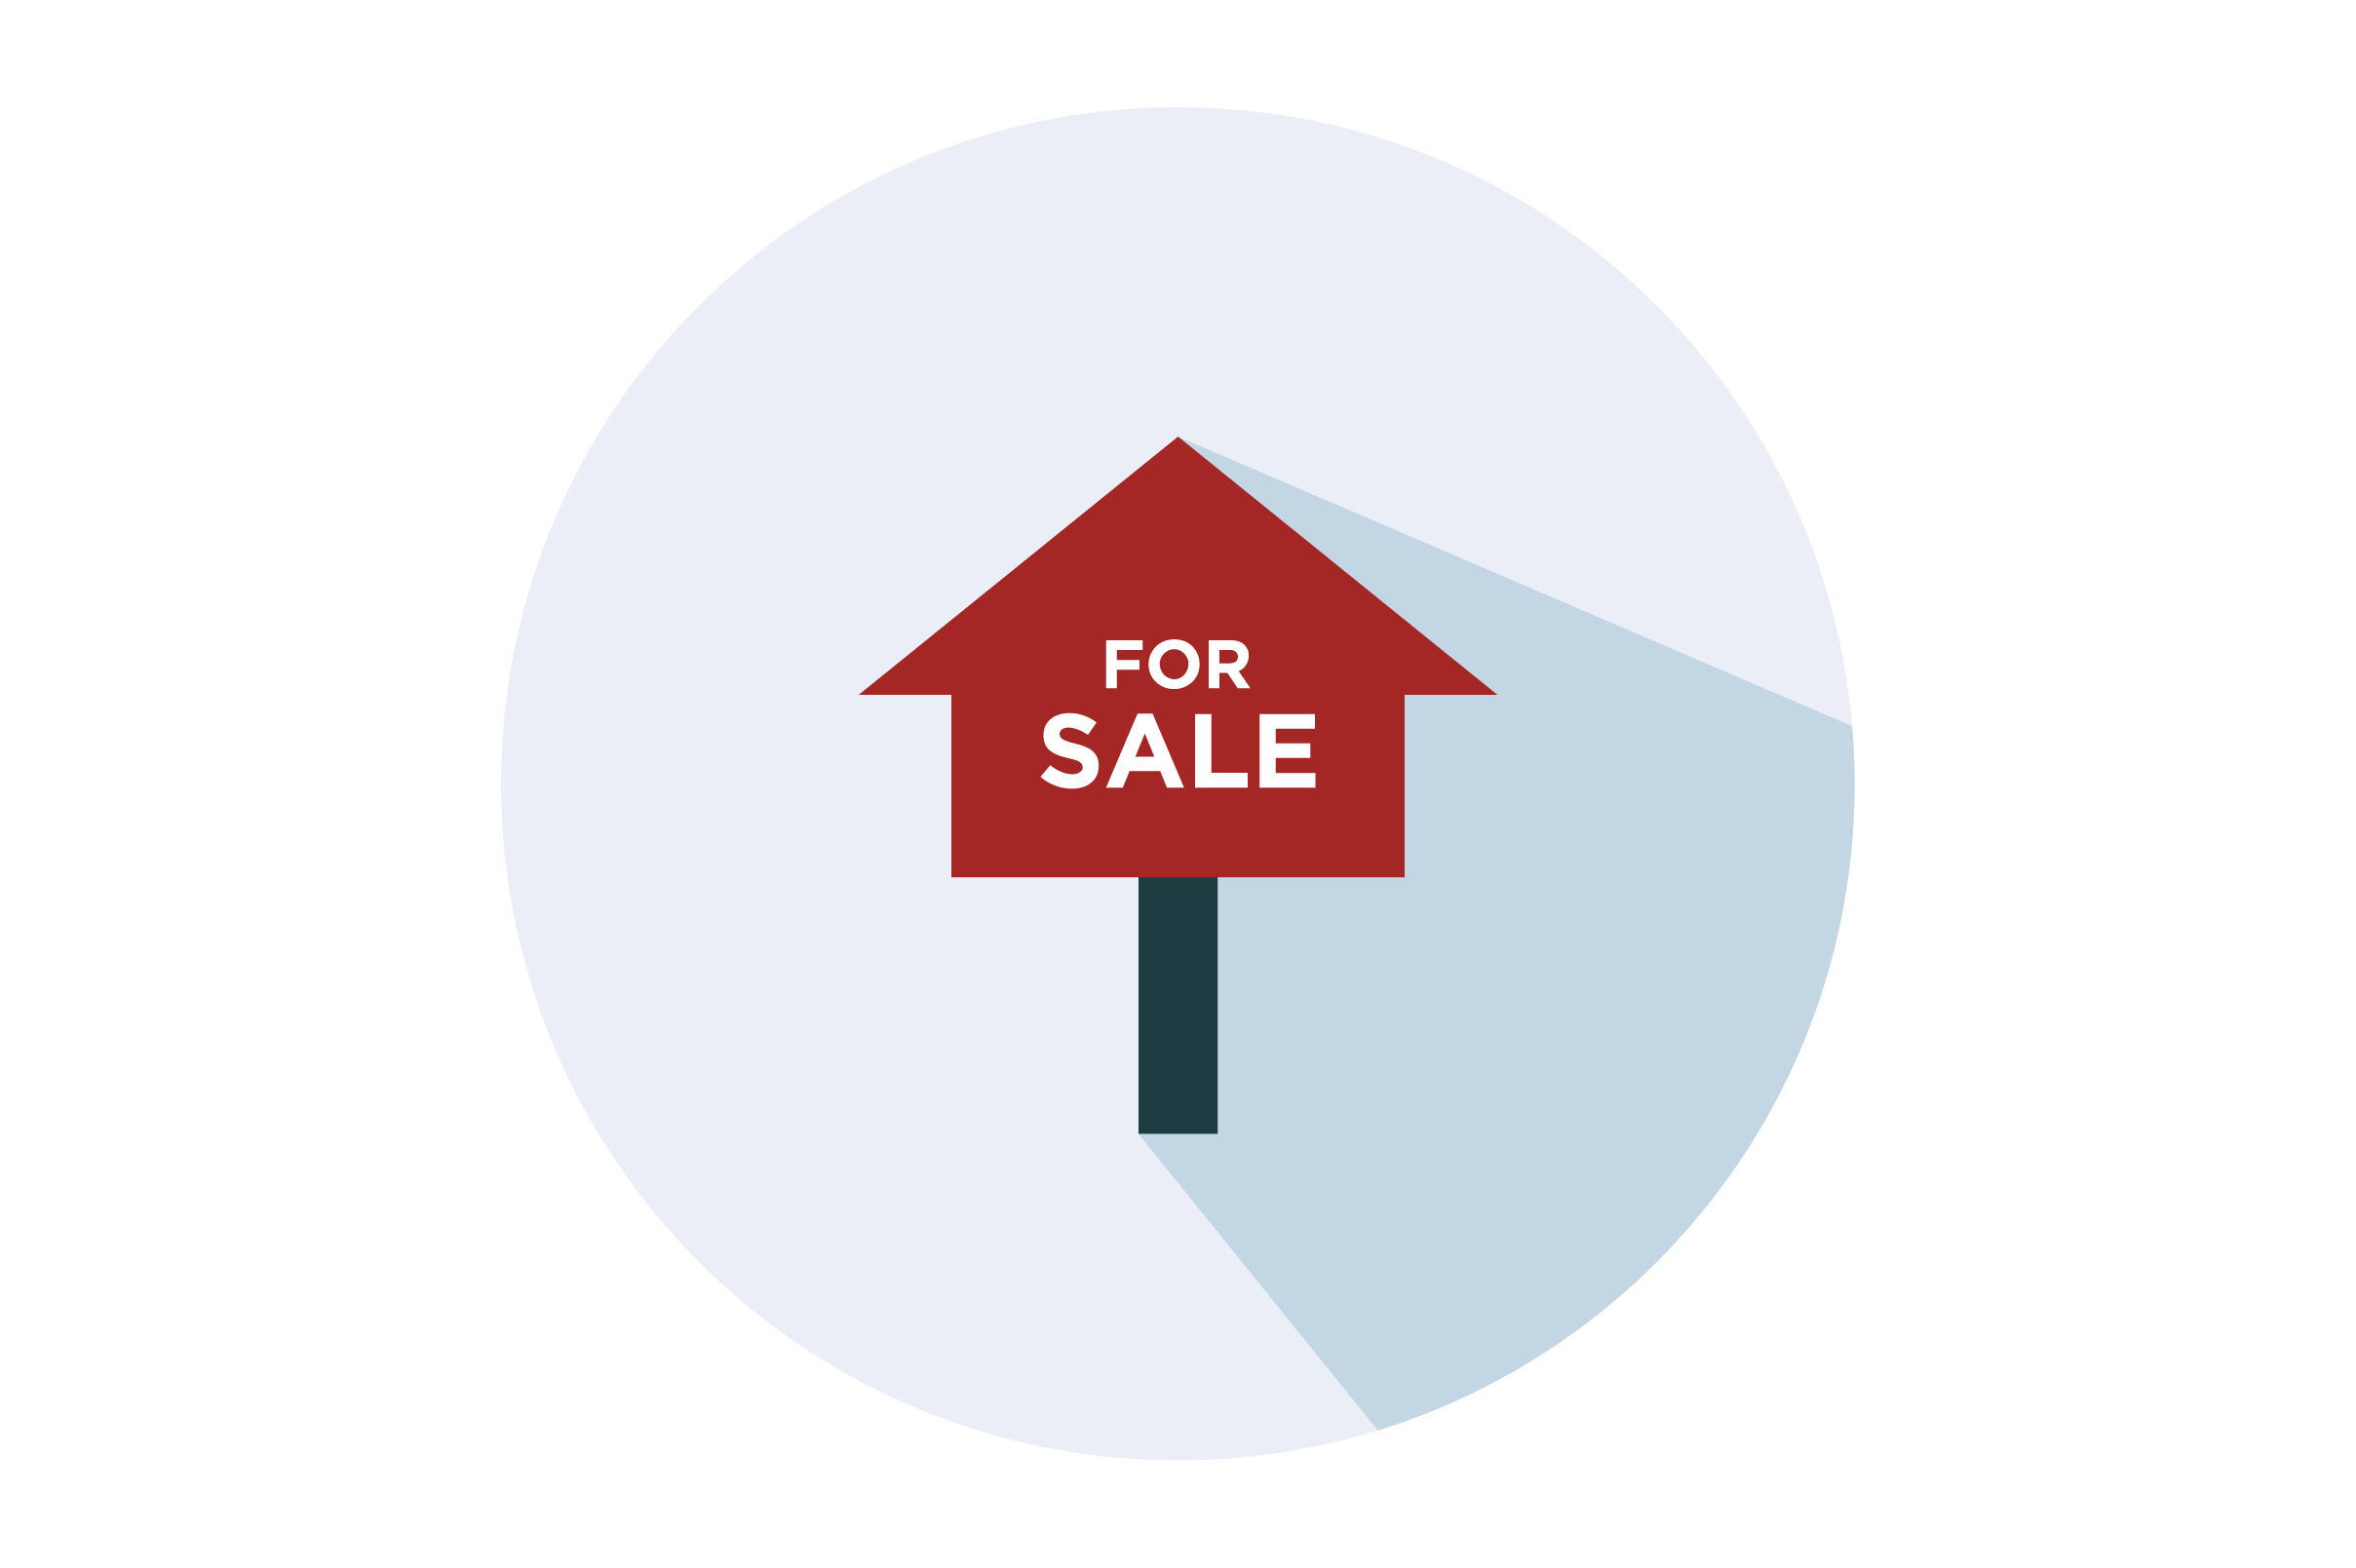 House For Sale Flat Vector Icon Graphic By Riduwan Molla